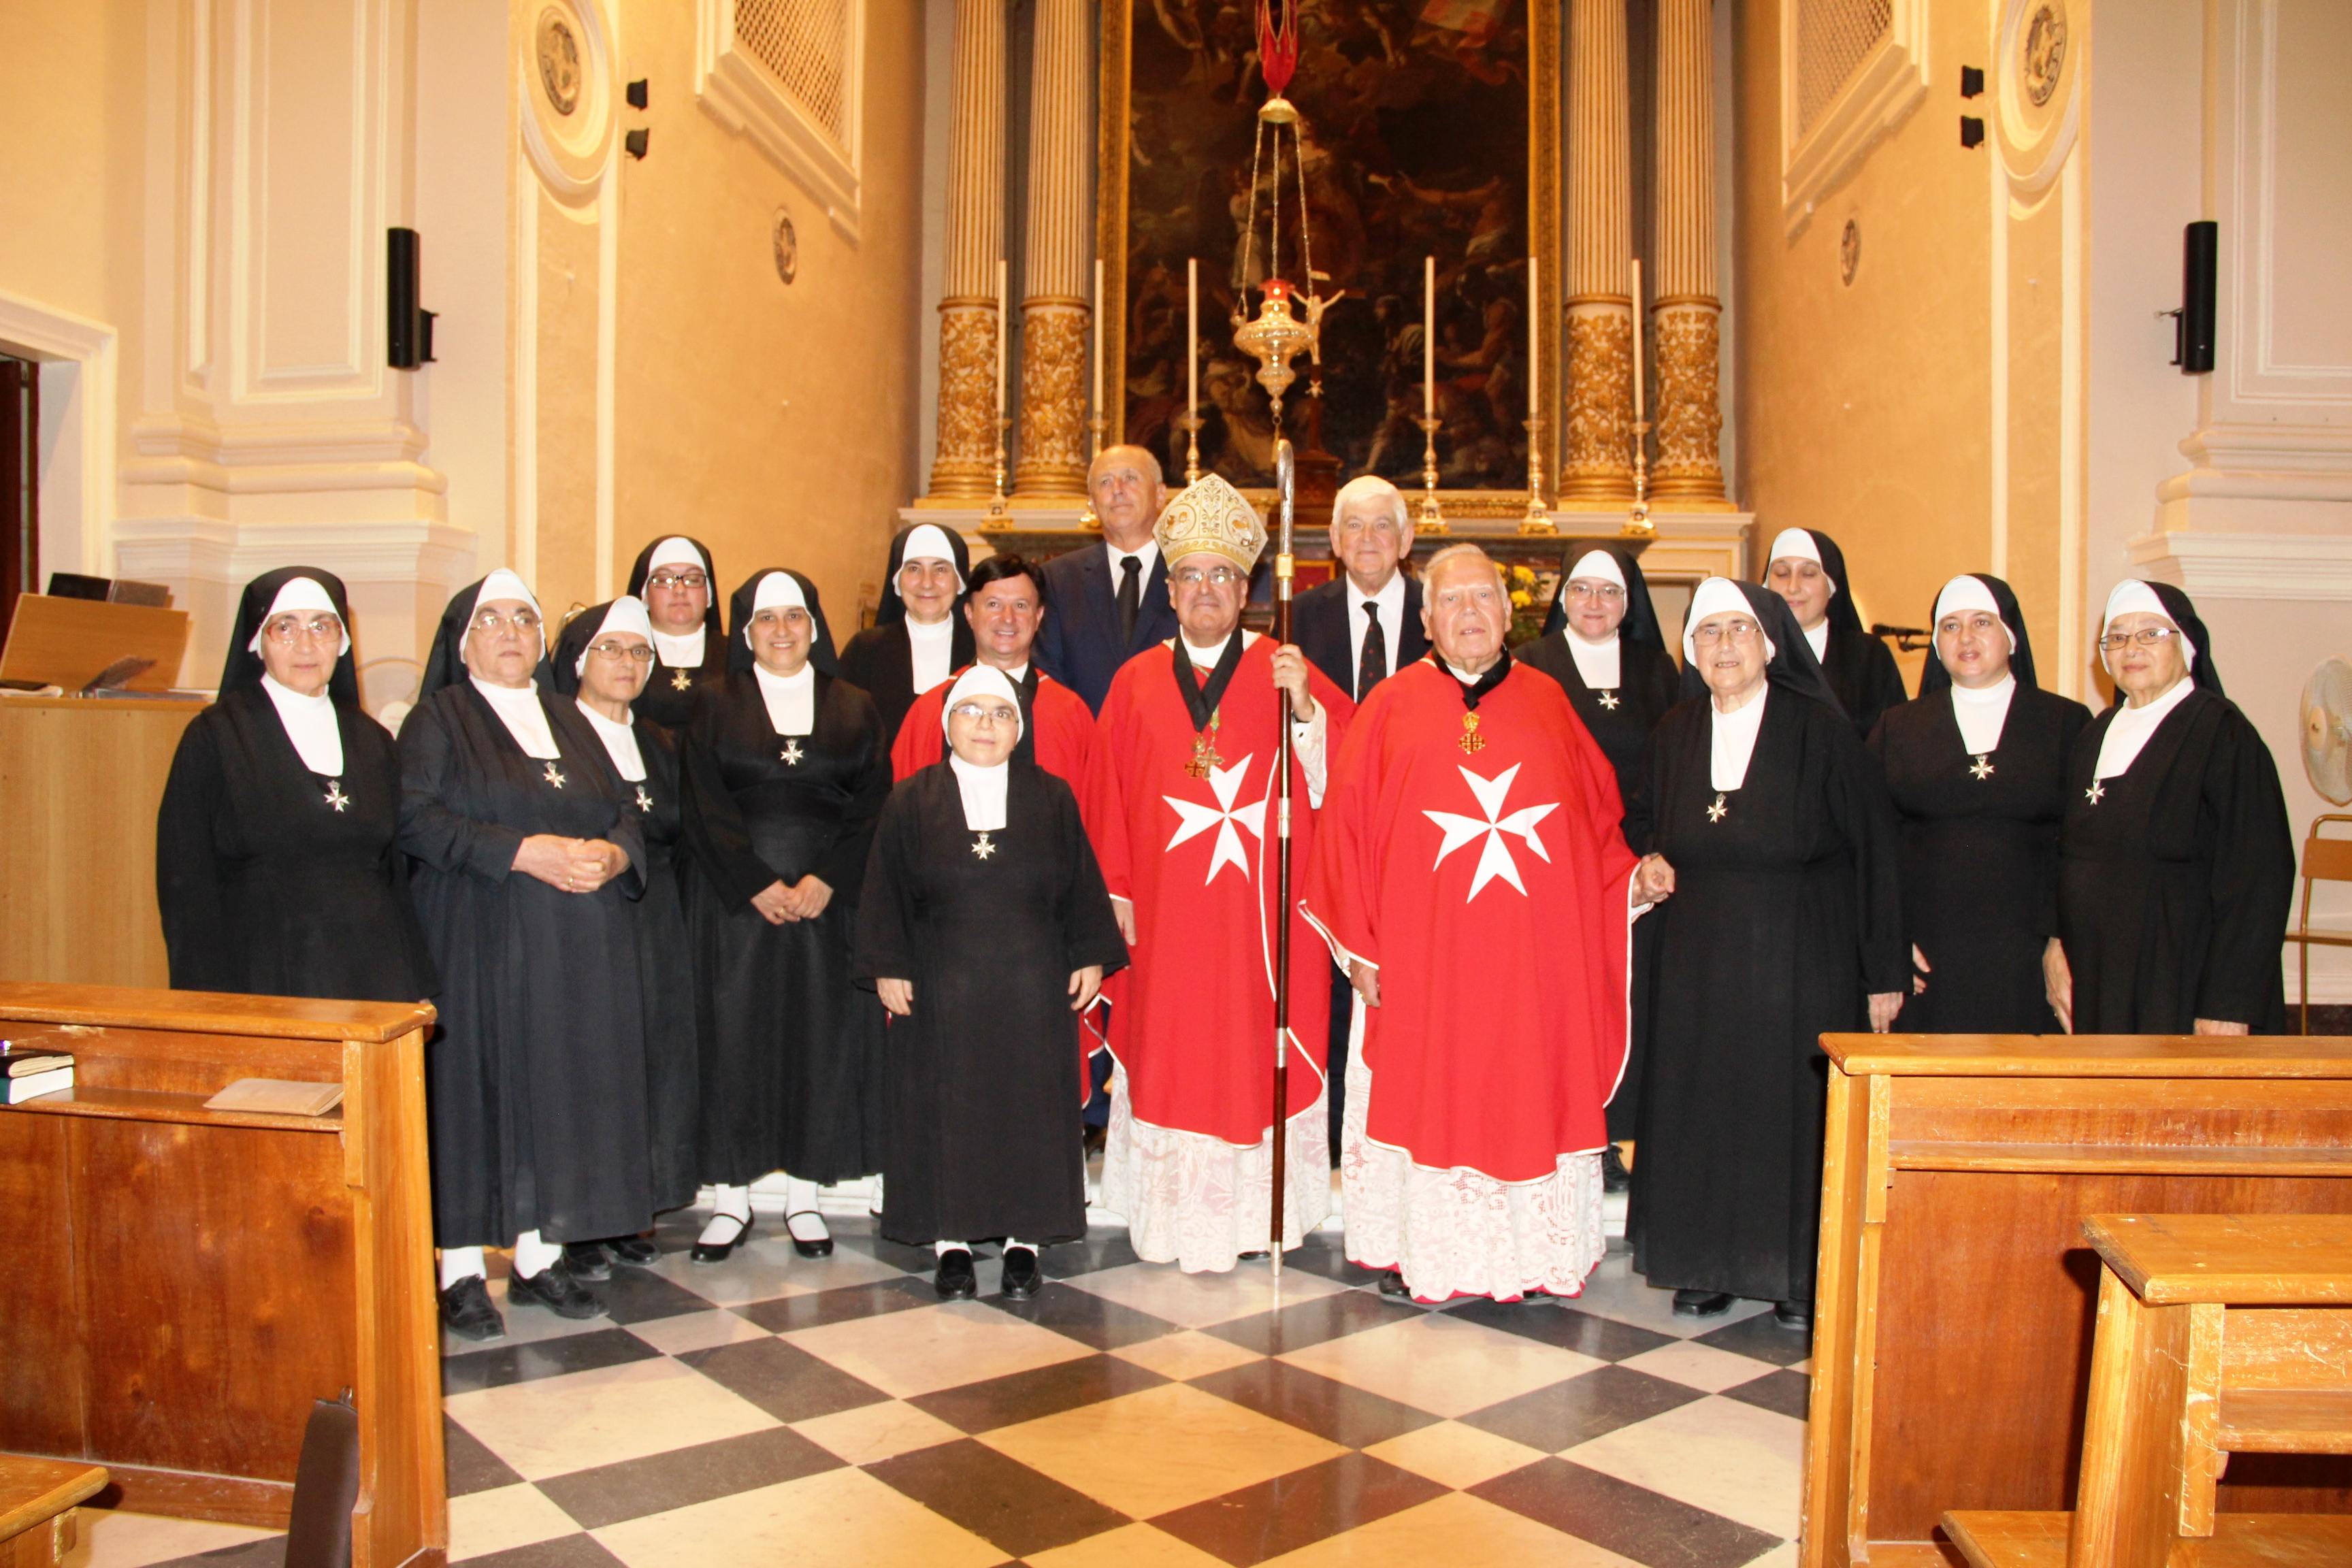 Nuns of the cloistered monastery of St Ursola with the Archbishop Emeritus and the Lieutenants